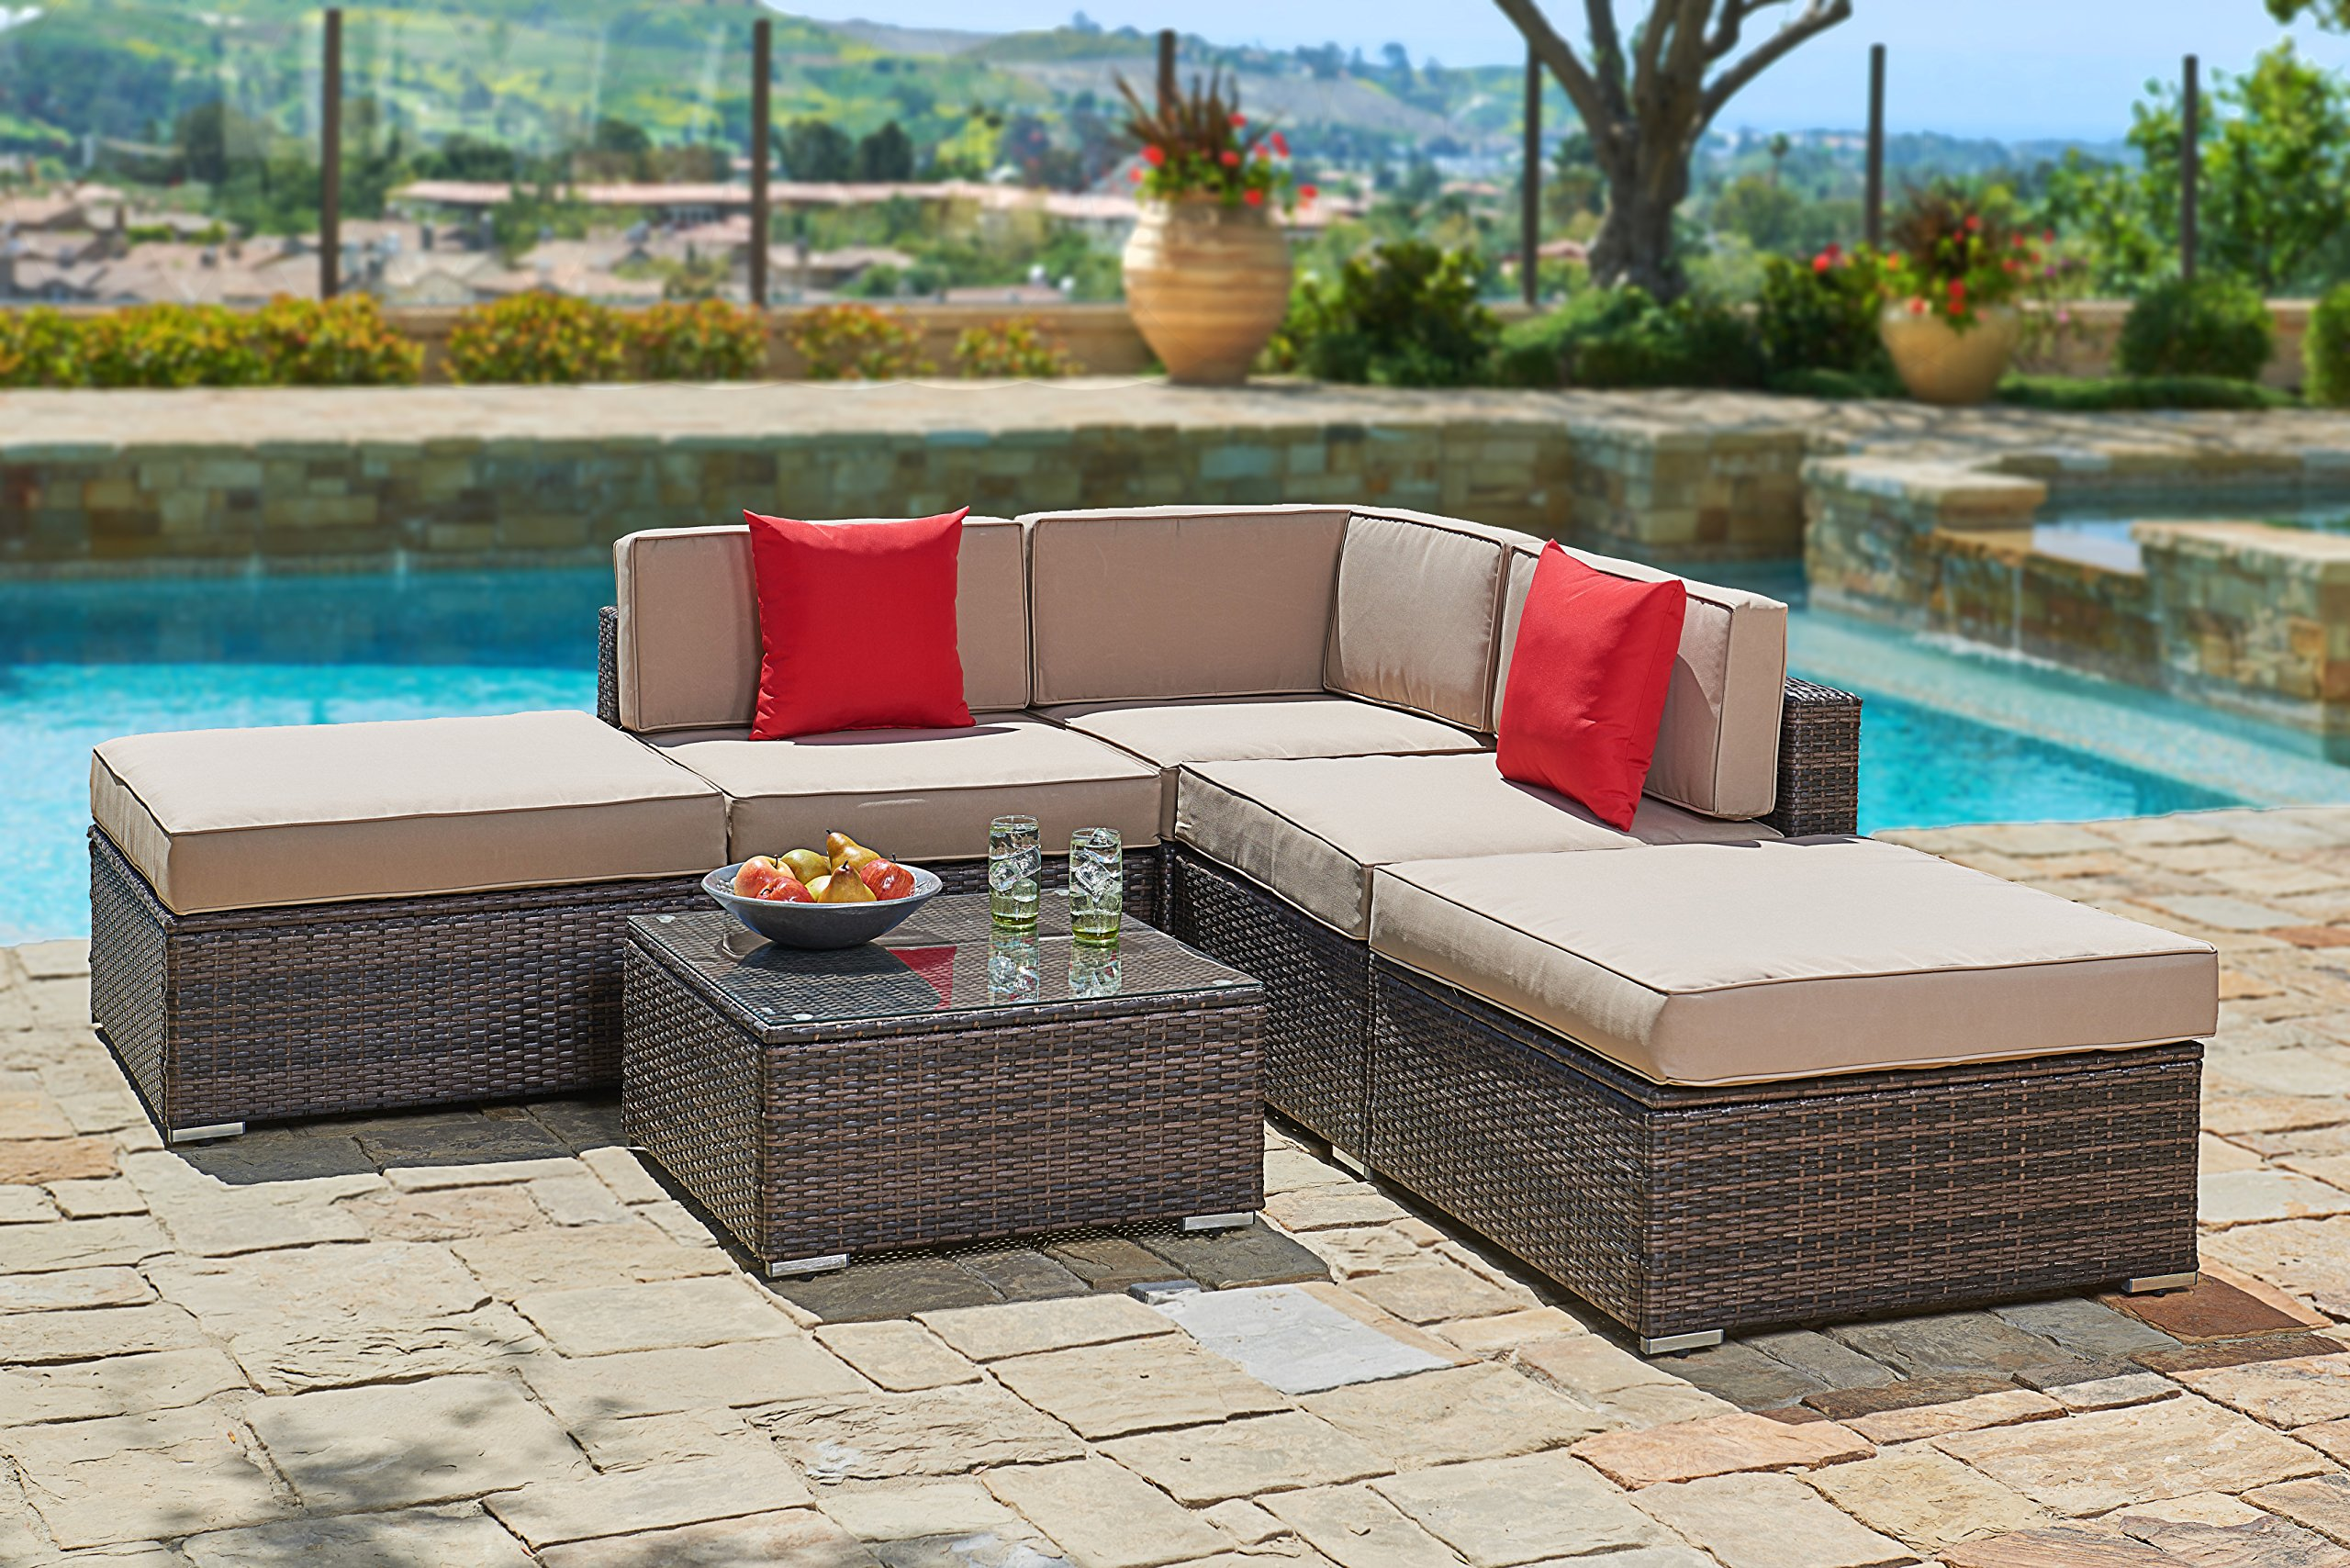 Suncrown Outdoor Furniture Sectional Sofa Set (6-Piece Set) All-Weather Brown Wicker with Brown Washable Seat Cushions & Modern Glass Coffee Table | Patio, Backyard, Pool | Incl. Waterproof Cover by Suncrown